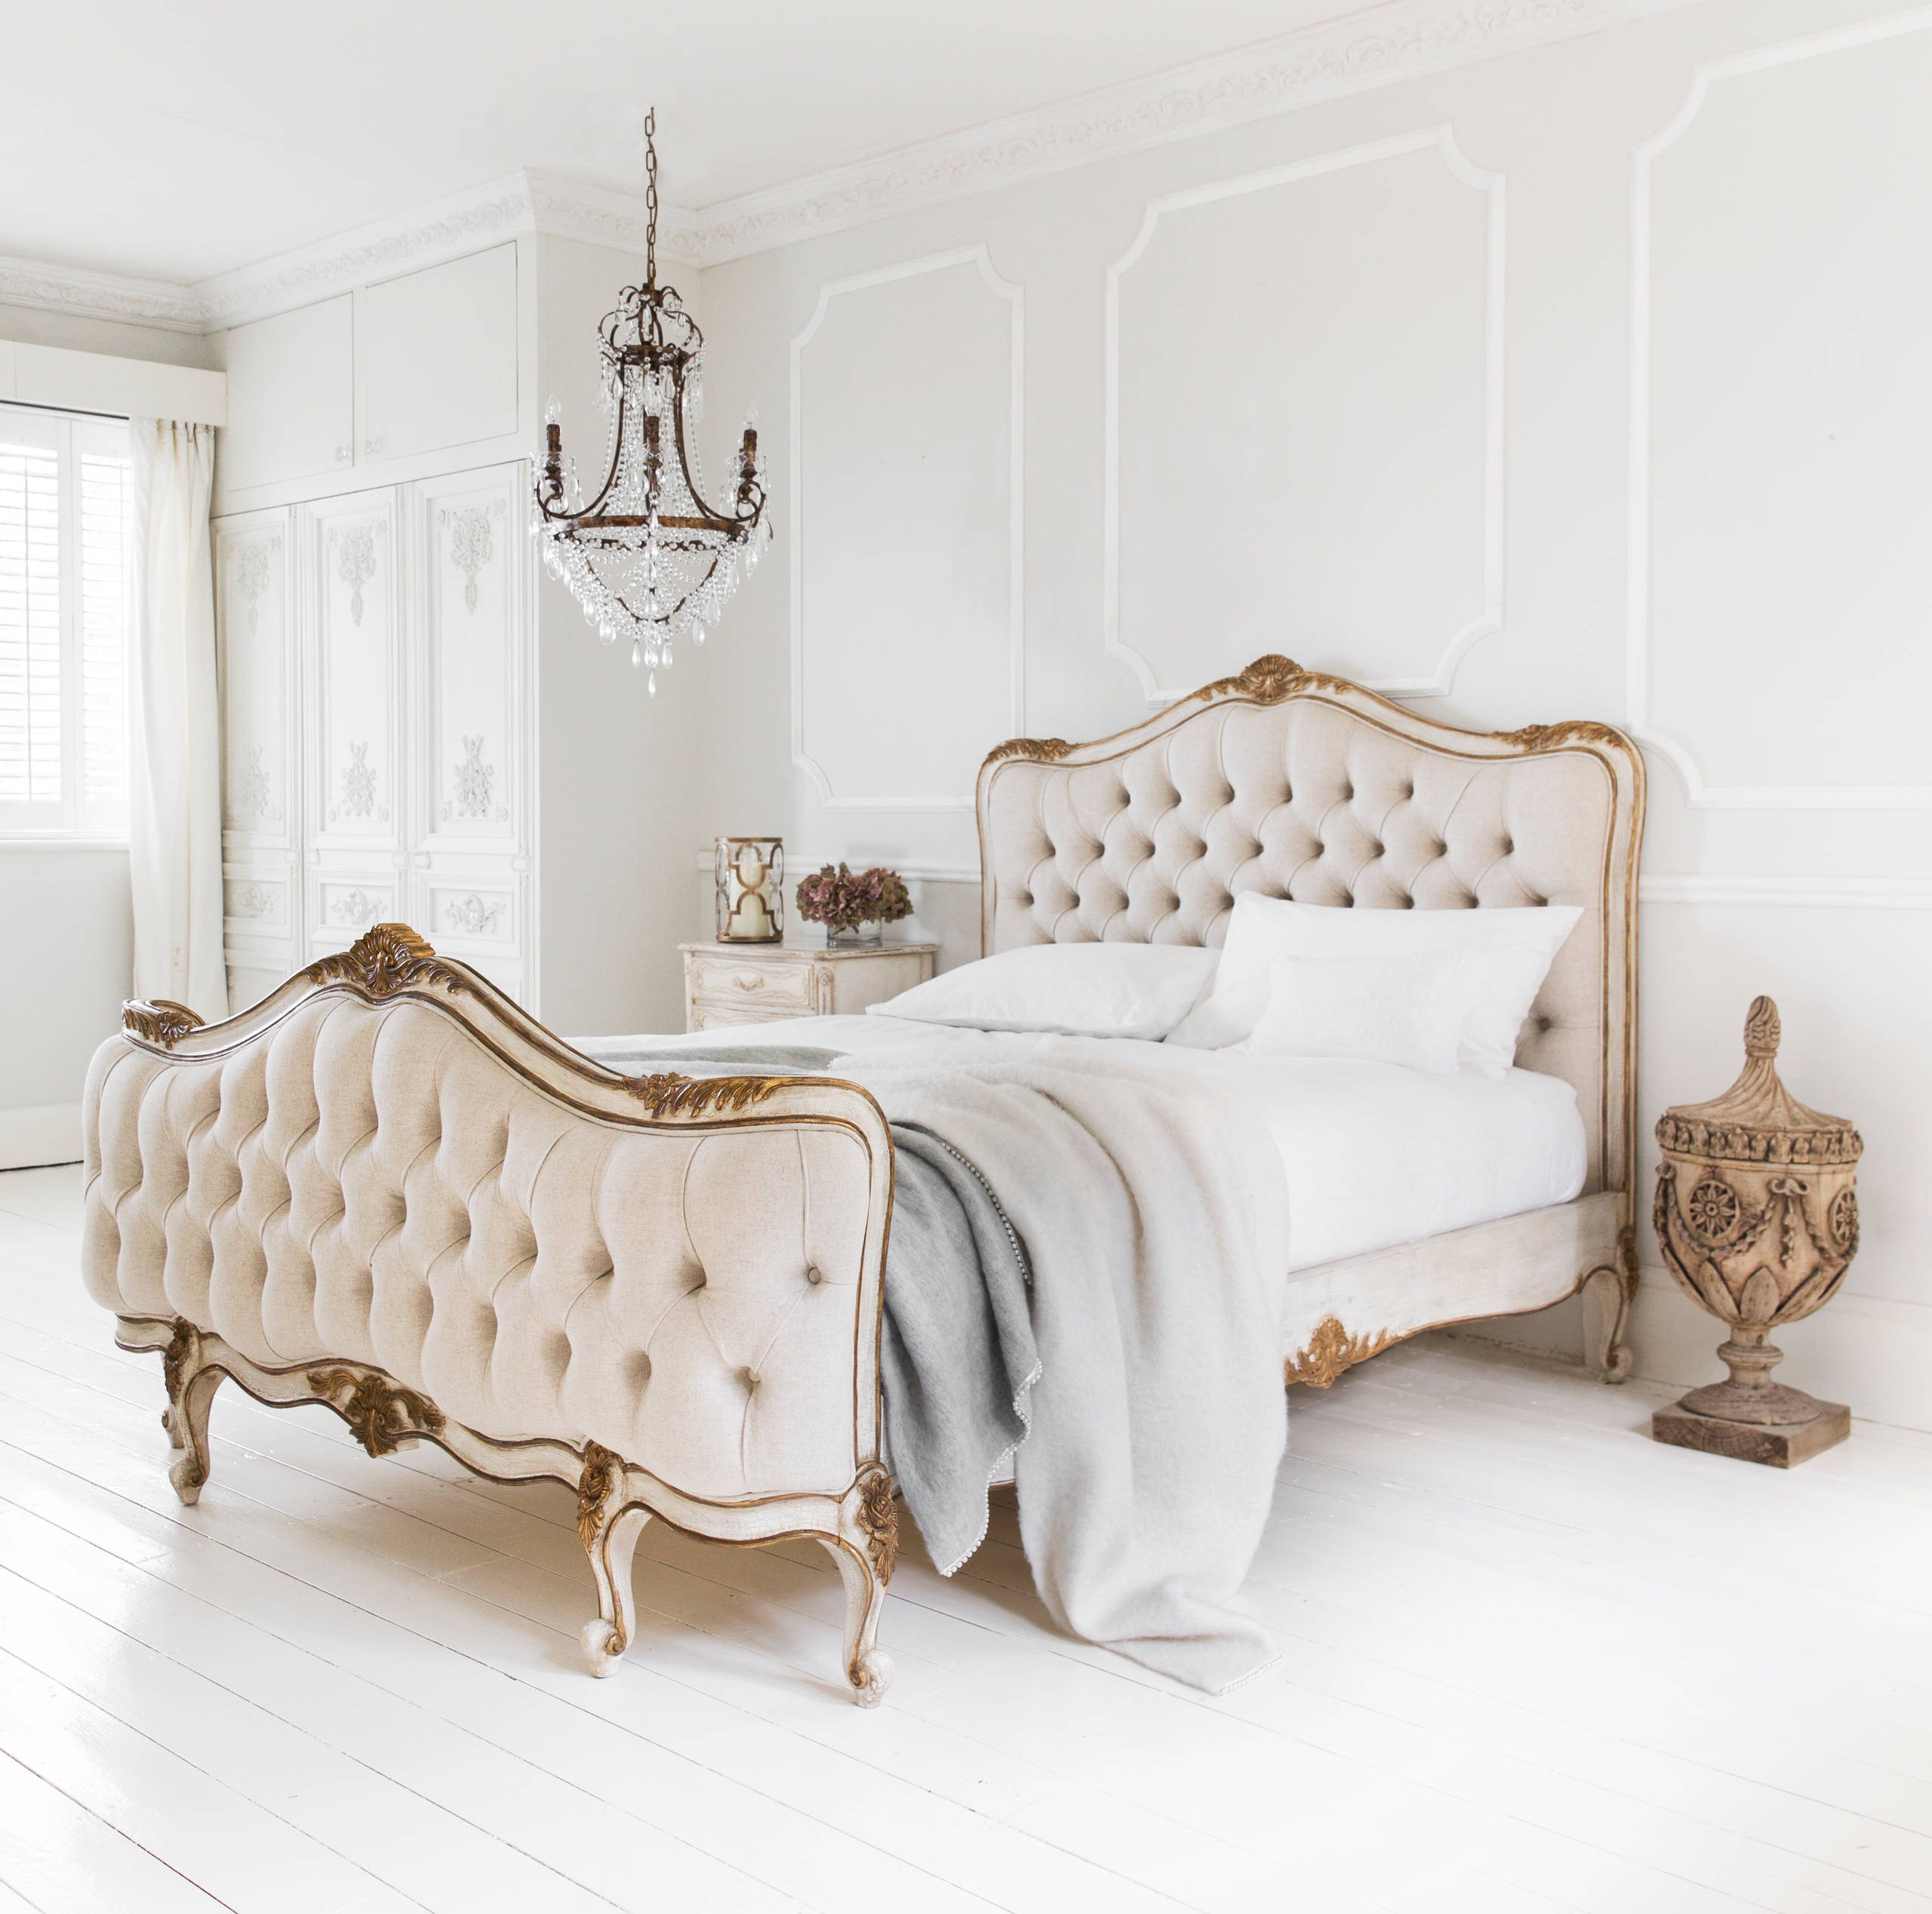 3 secrets to french decorating versailles inspired rooms shoproomideas. Black Bedroom Furniture Sets. Home Design Ideas